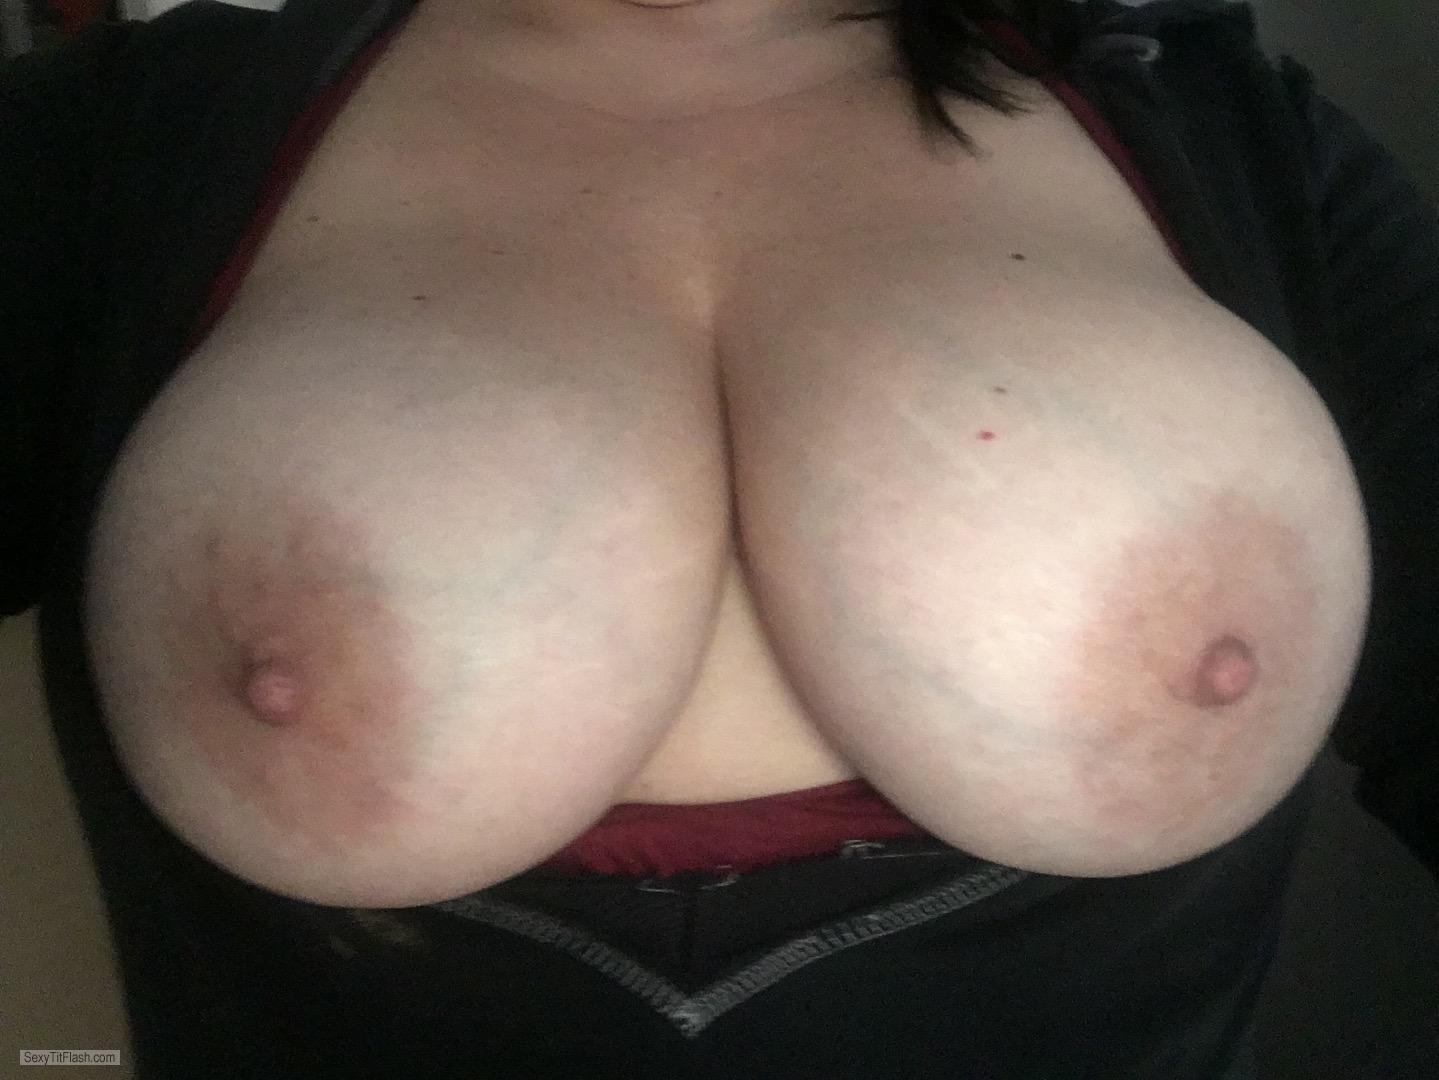 My Big Tits Super Bowl Sunday